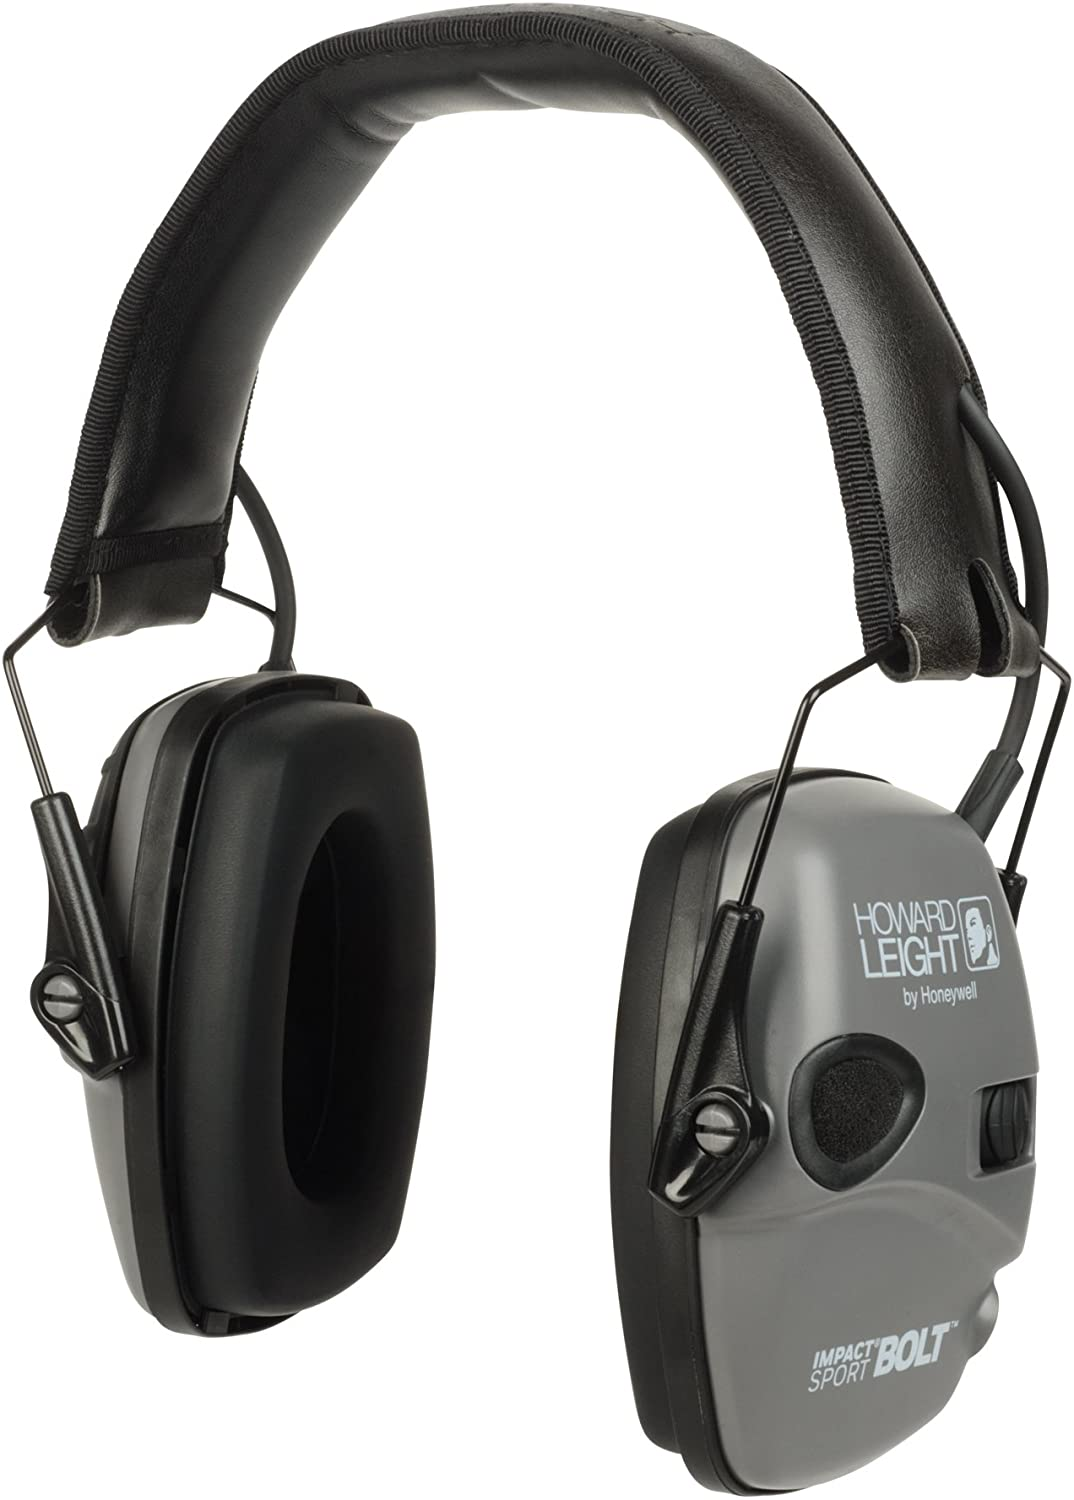 Howard Leight Impact Sport Bolt Digital Electronic Shooting Earmuff, Gray: Home Improvement